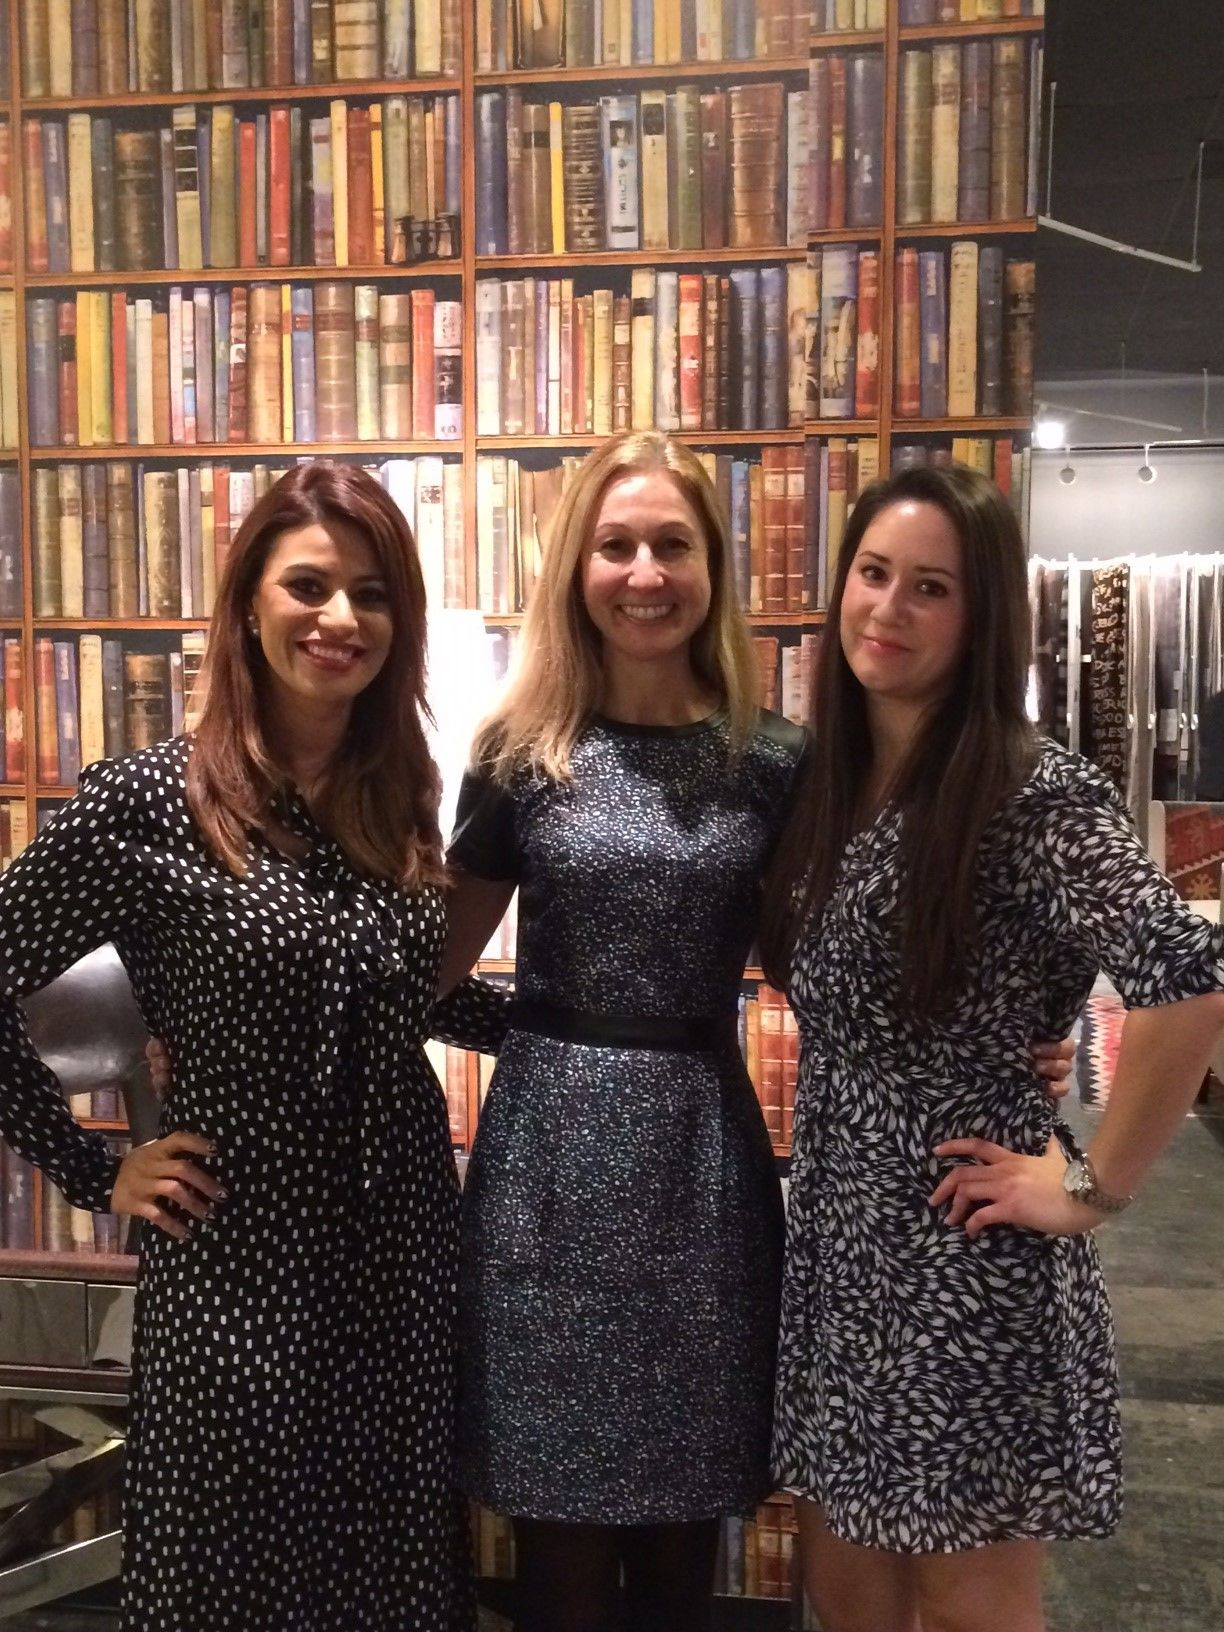 Successful event yesterday at Houston showroom with Jennifer, Christine, and Johanna! #andrewmartin #dch #interiordesign